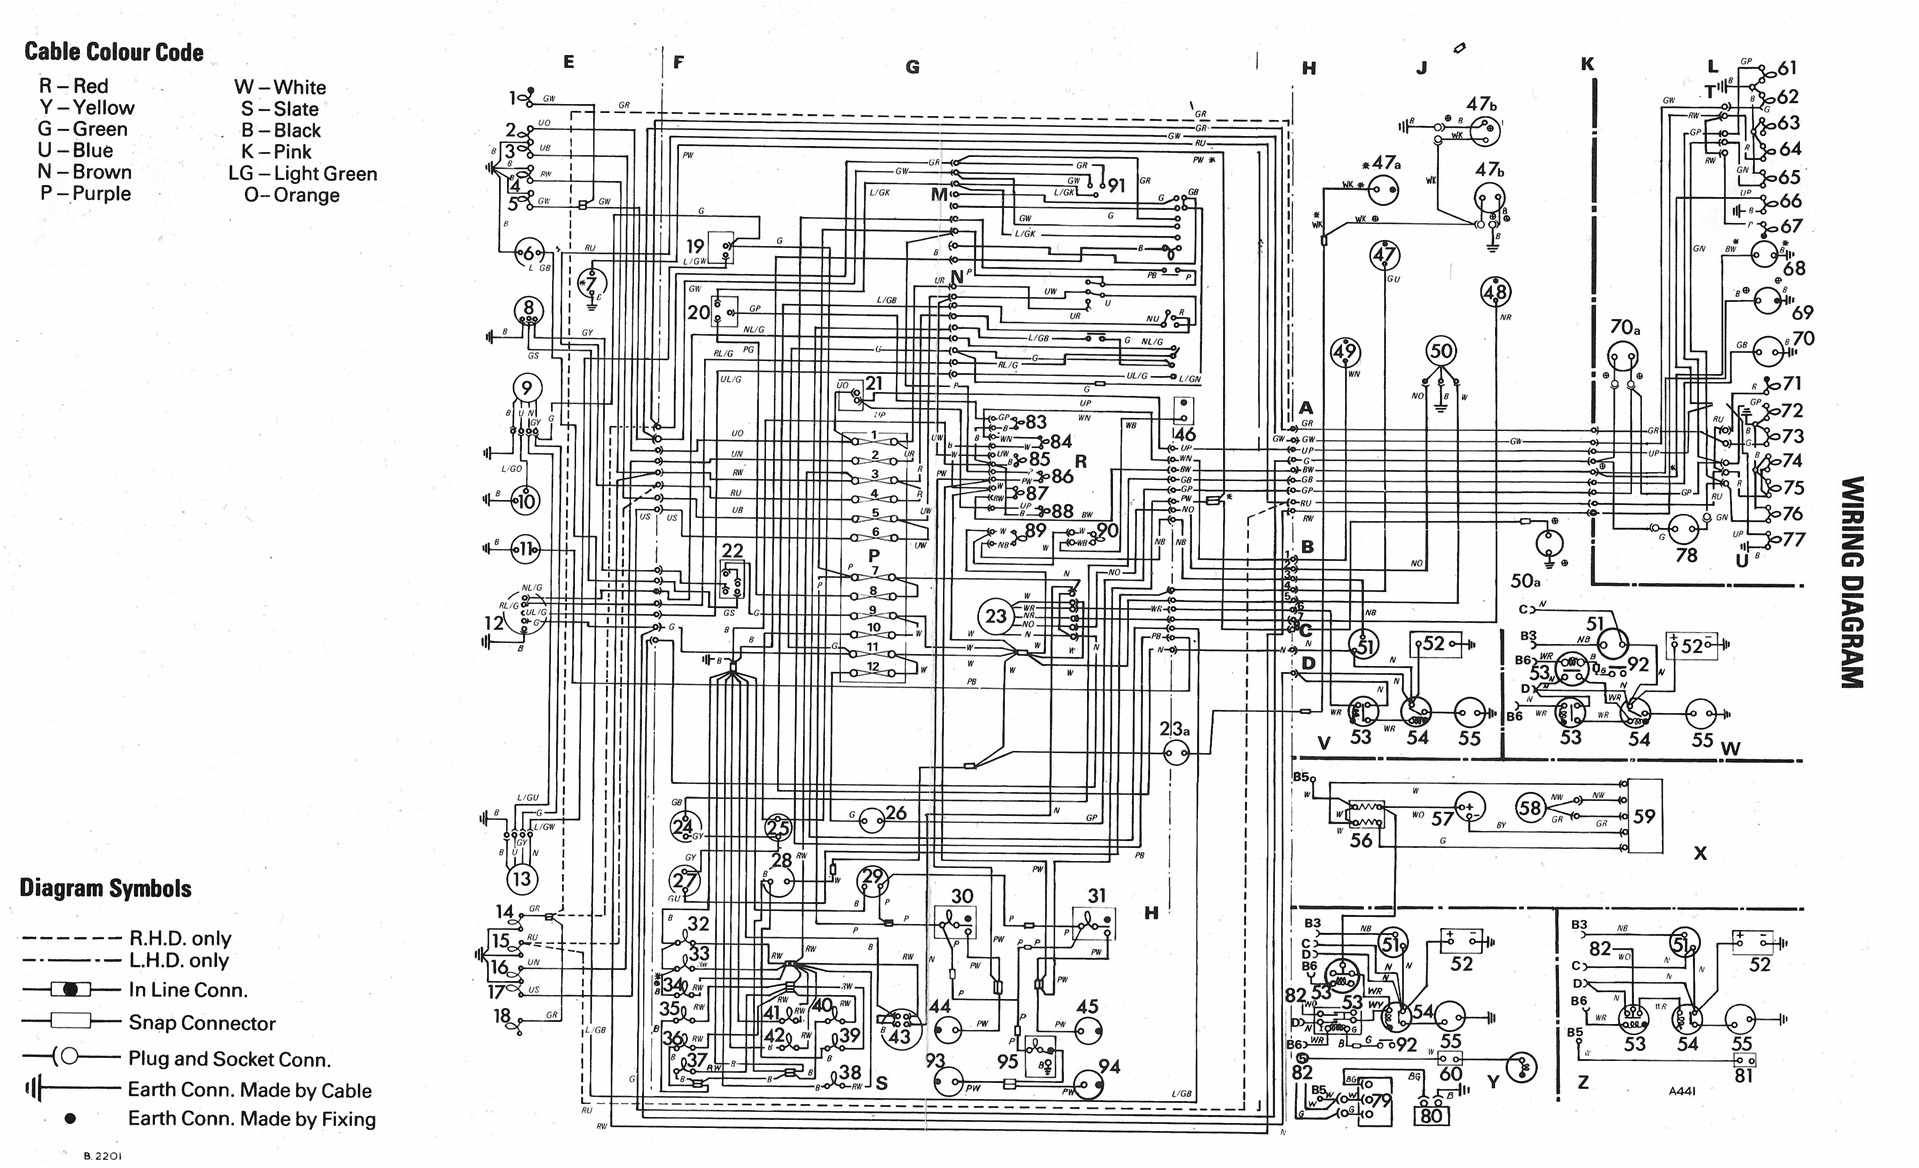 volkswagen mk1 golf engine diagram volkswagen circuit diagrams electrical wiring diagram of volkswagen golf mk1 mk1 [ 1919 x 1168 Pixel ]